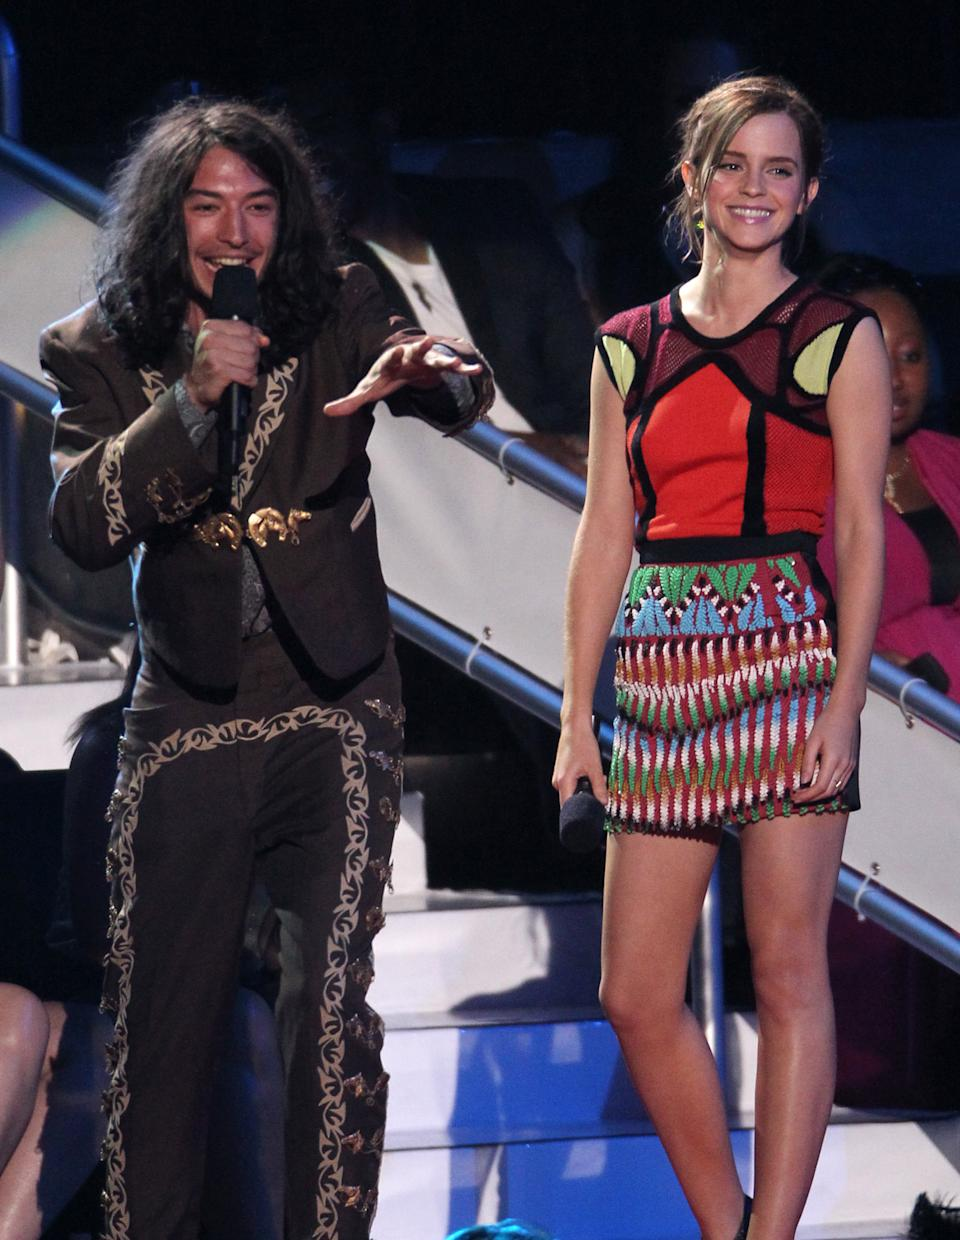 Ezra Miller, left, and Emma Watson speak onstage at the MTV Video Music Awards on Thursday, Sept. 6, 2012, in Los Angeles. (Photo by Matt Sayles/Invision/AP)